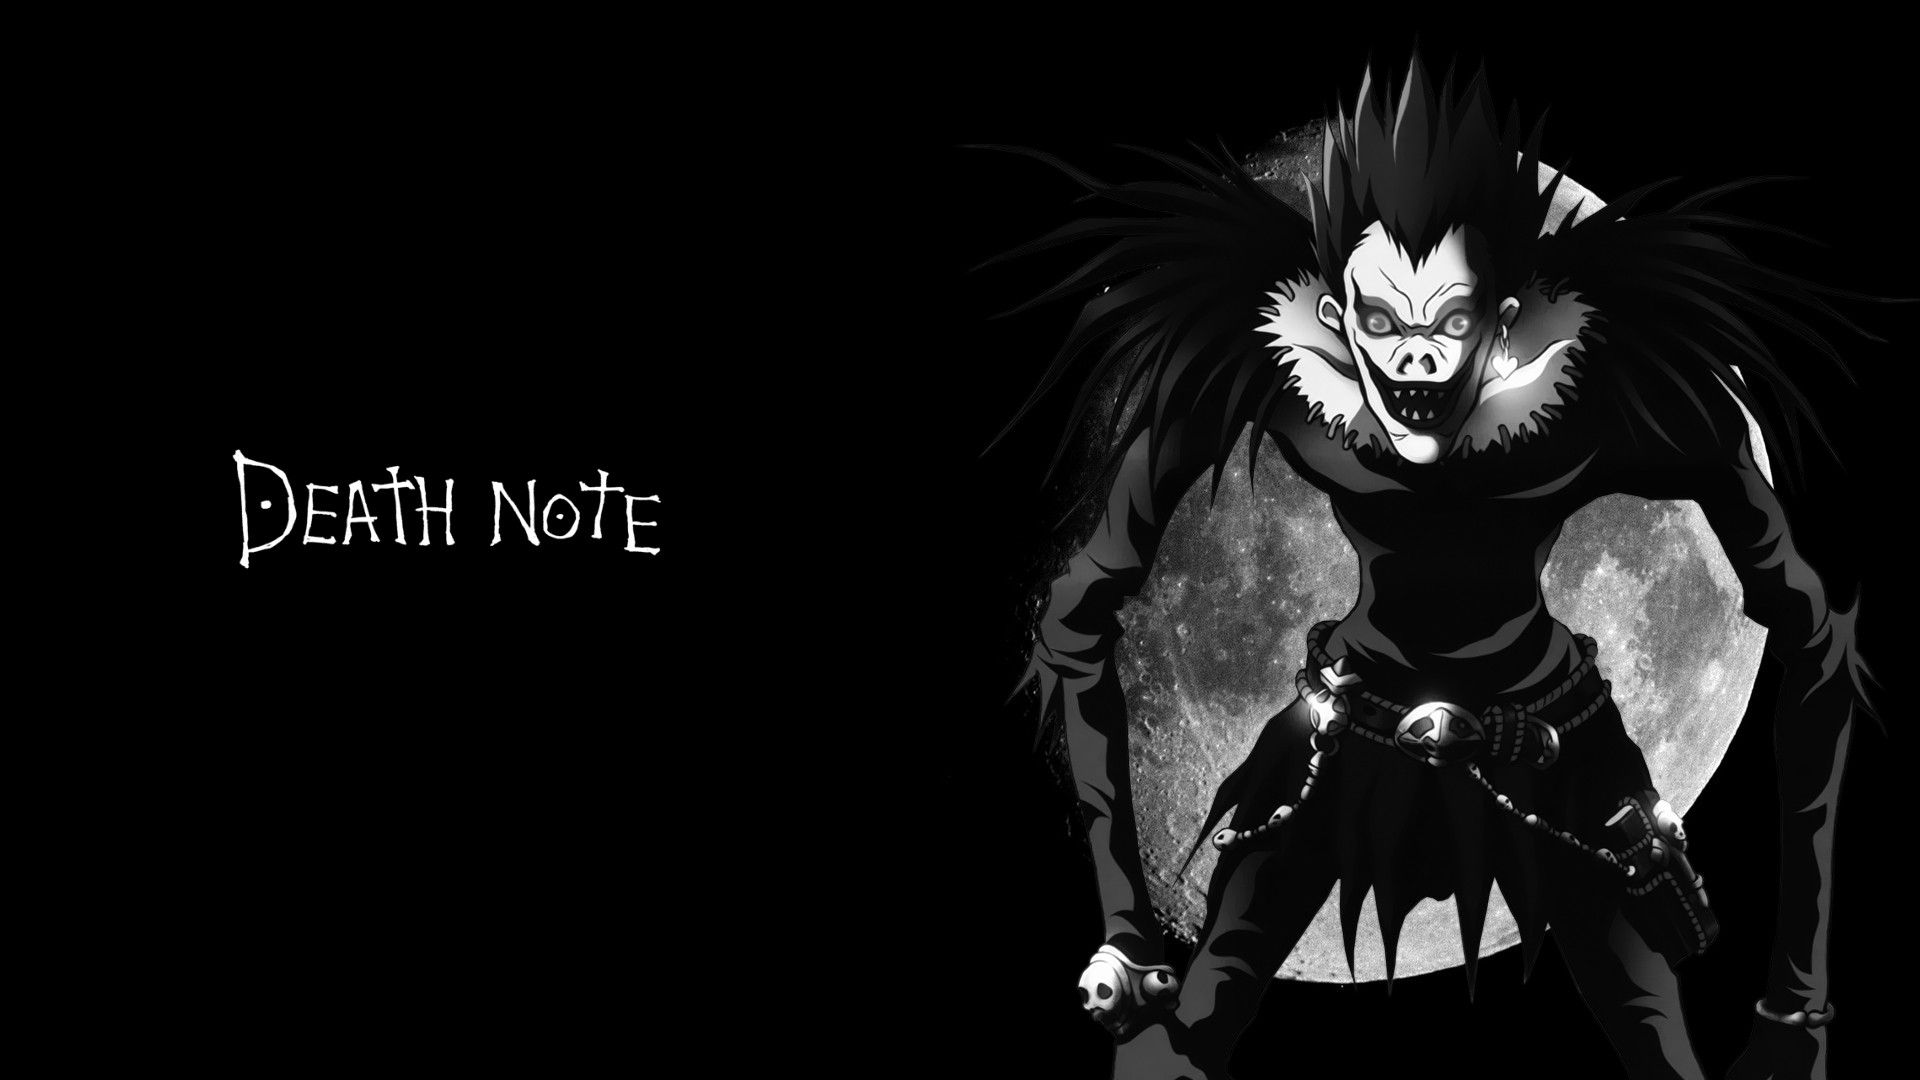 Death Note Wallpaper 1680×1050 Death Note Anime Wallpapers